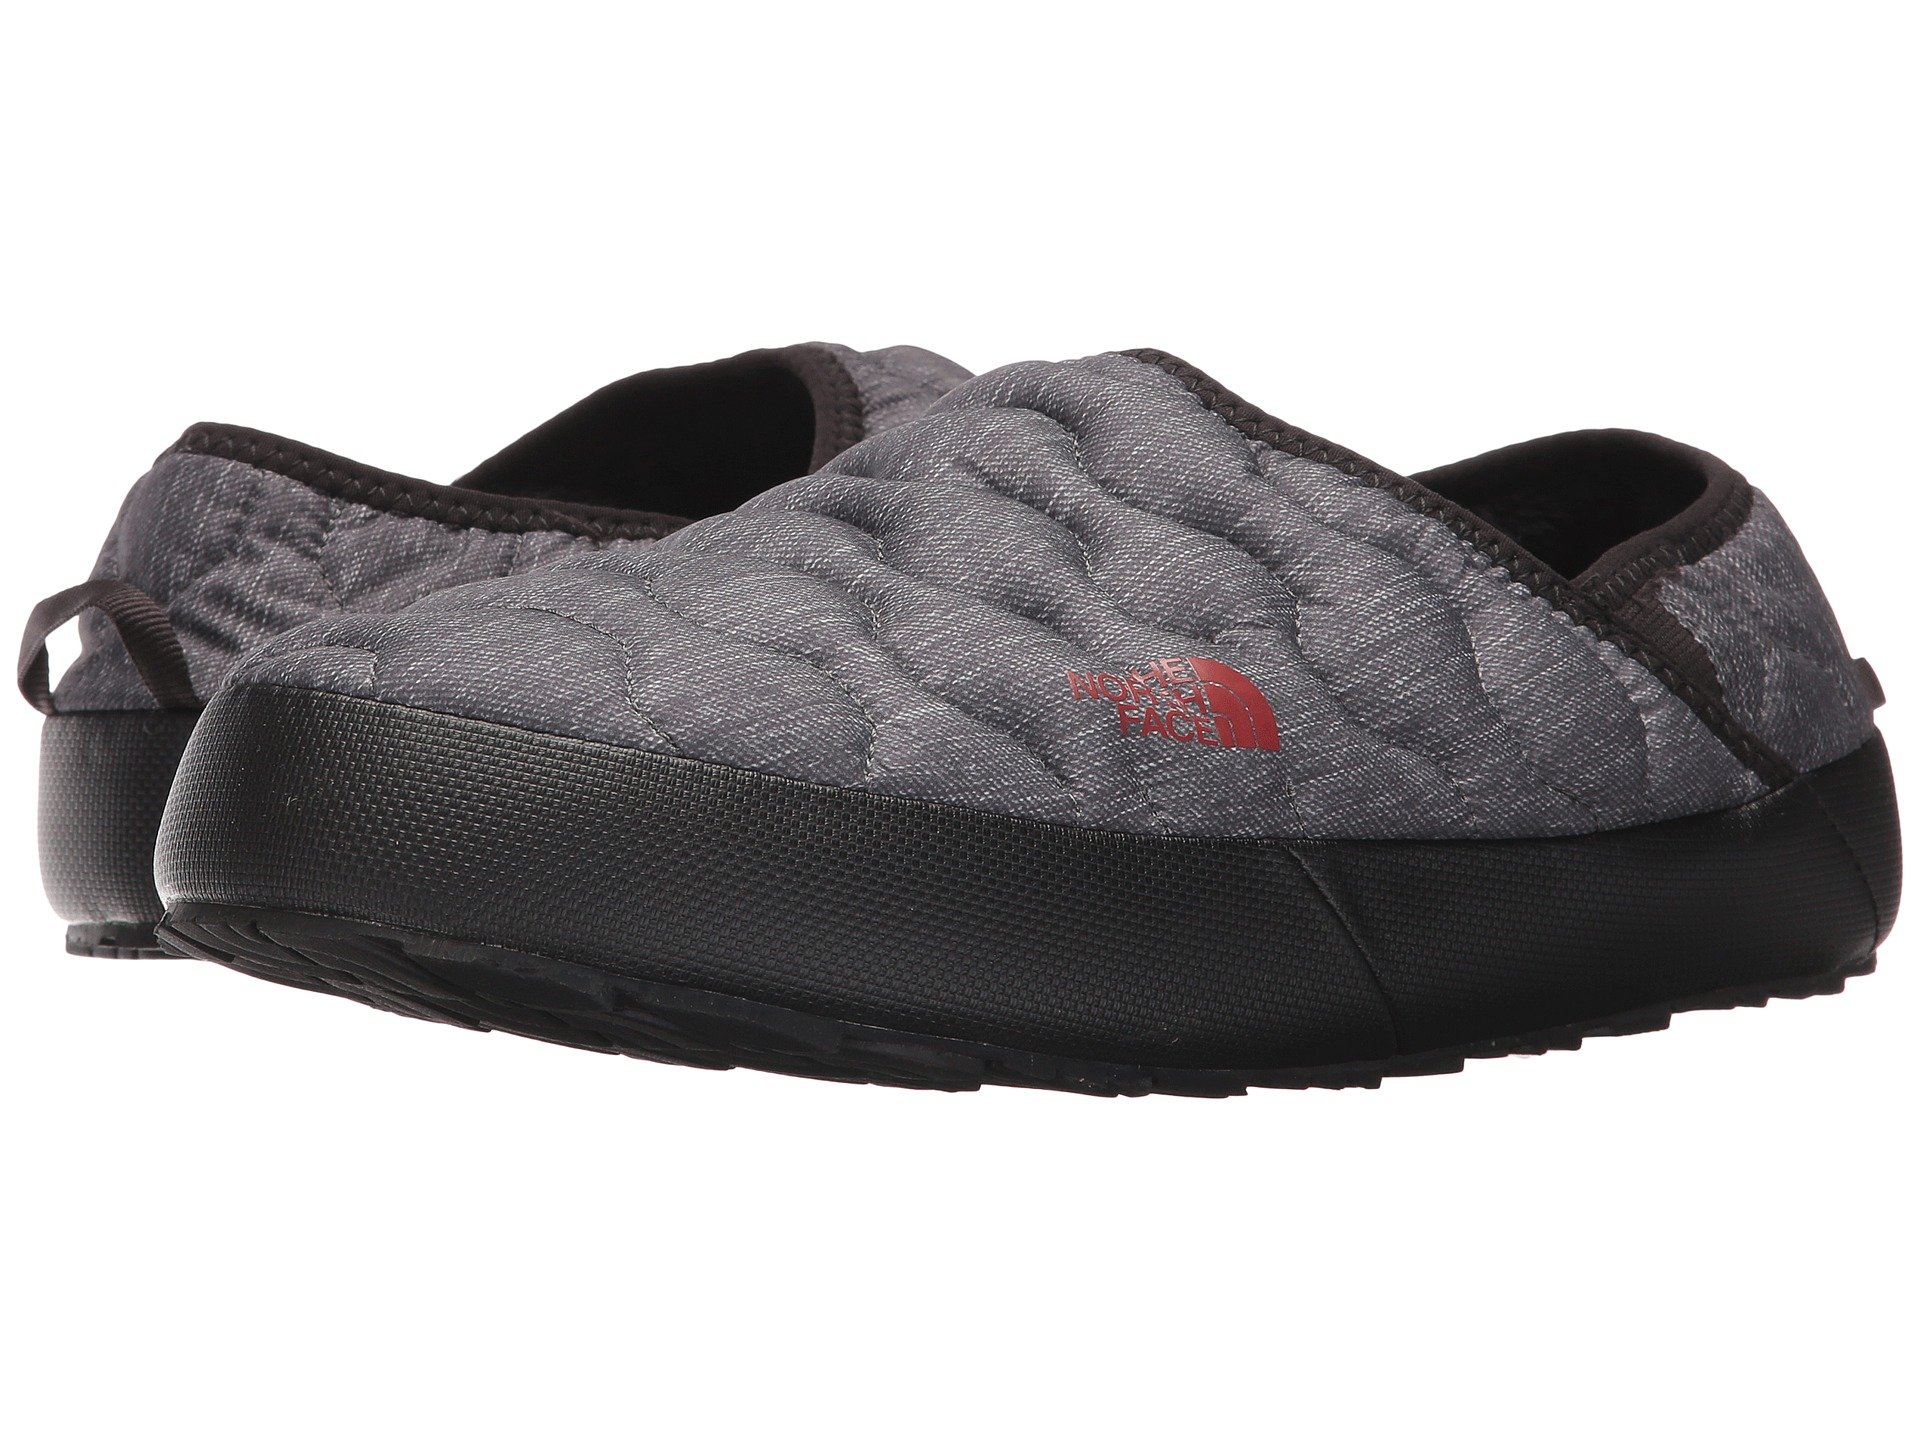 Calzado Sin Talon para Hombre The North Face ThermoBall Traction Mule IV  + The North Face en VeoyCompro.net